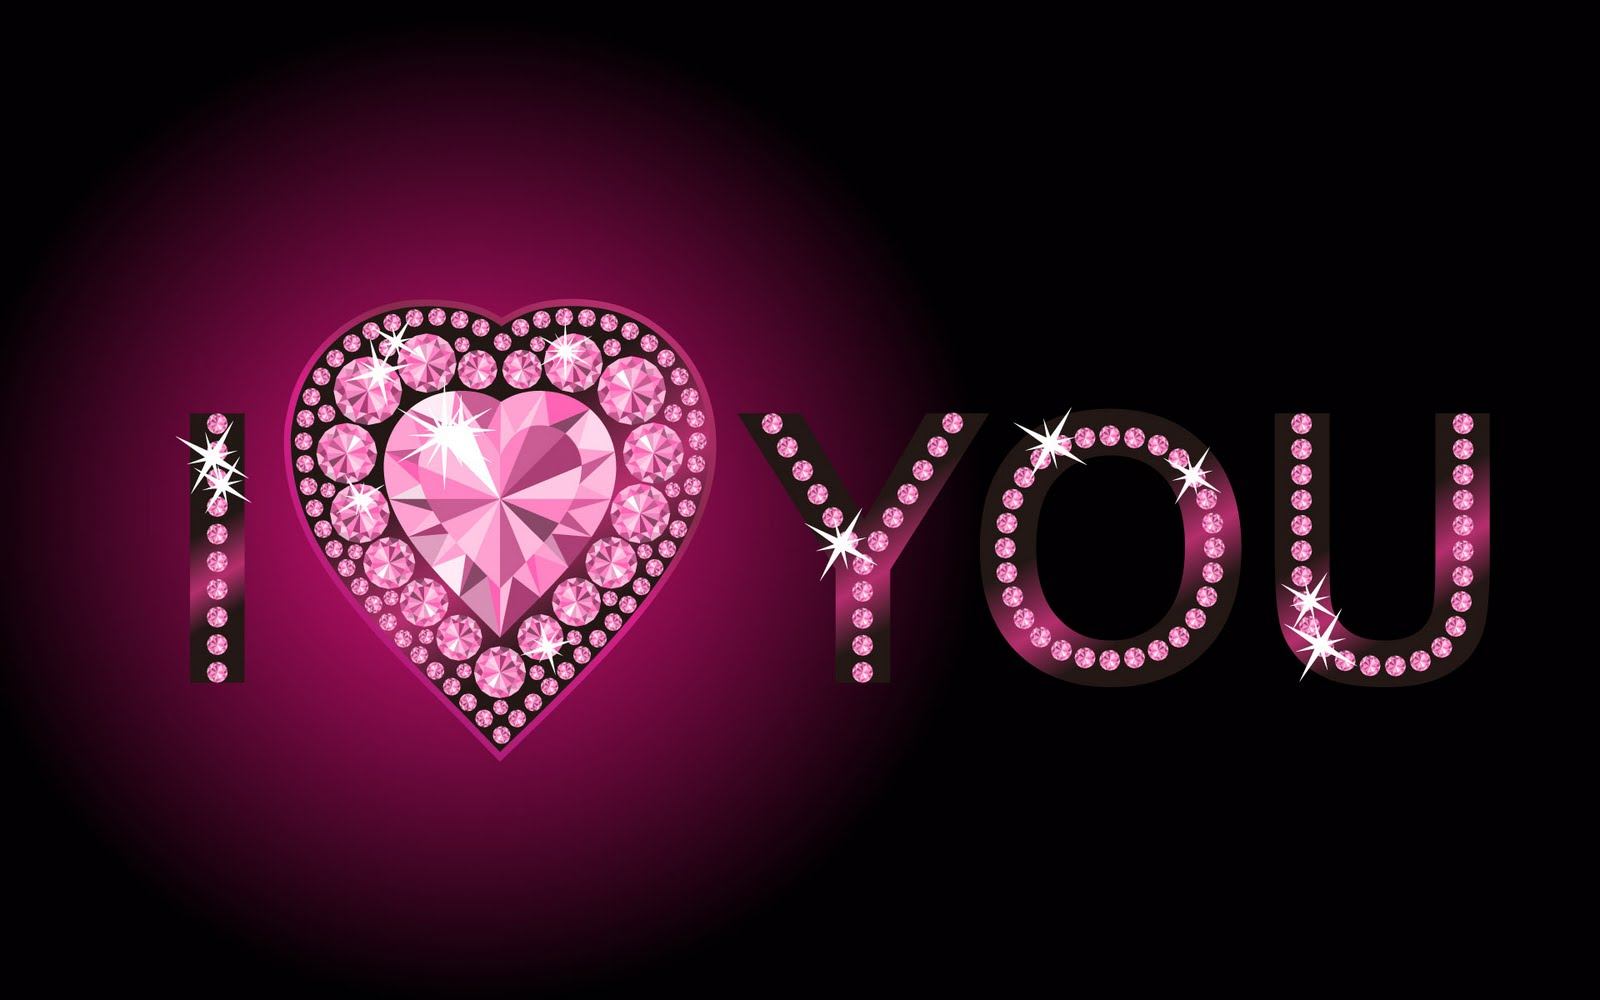 i love you hearts images - photo #28